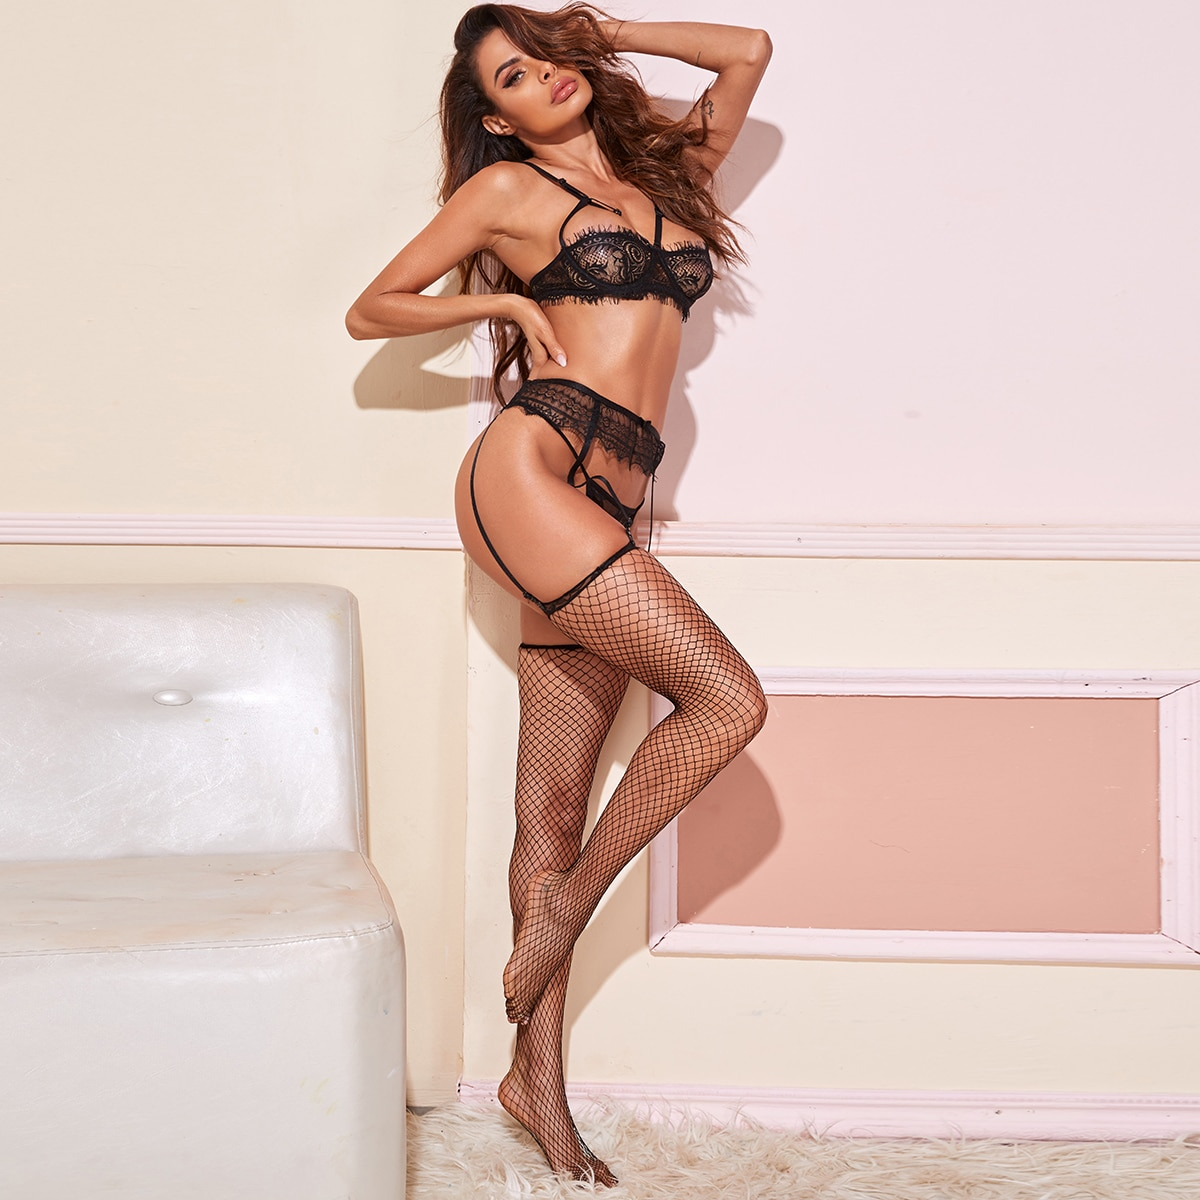 SHEIN / Eyelash Lace Underwire Garter Lingerie Set With Stockings